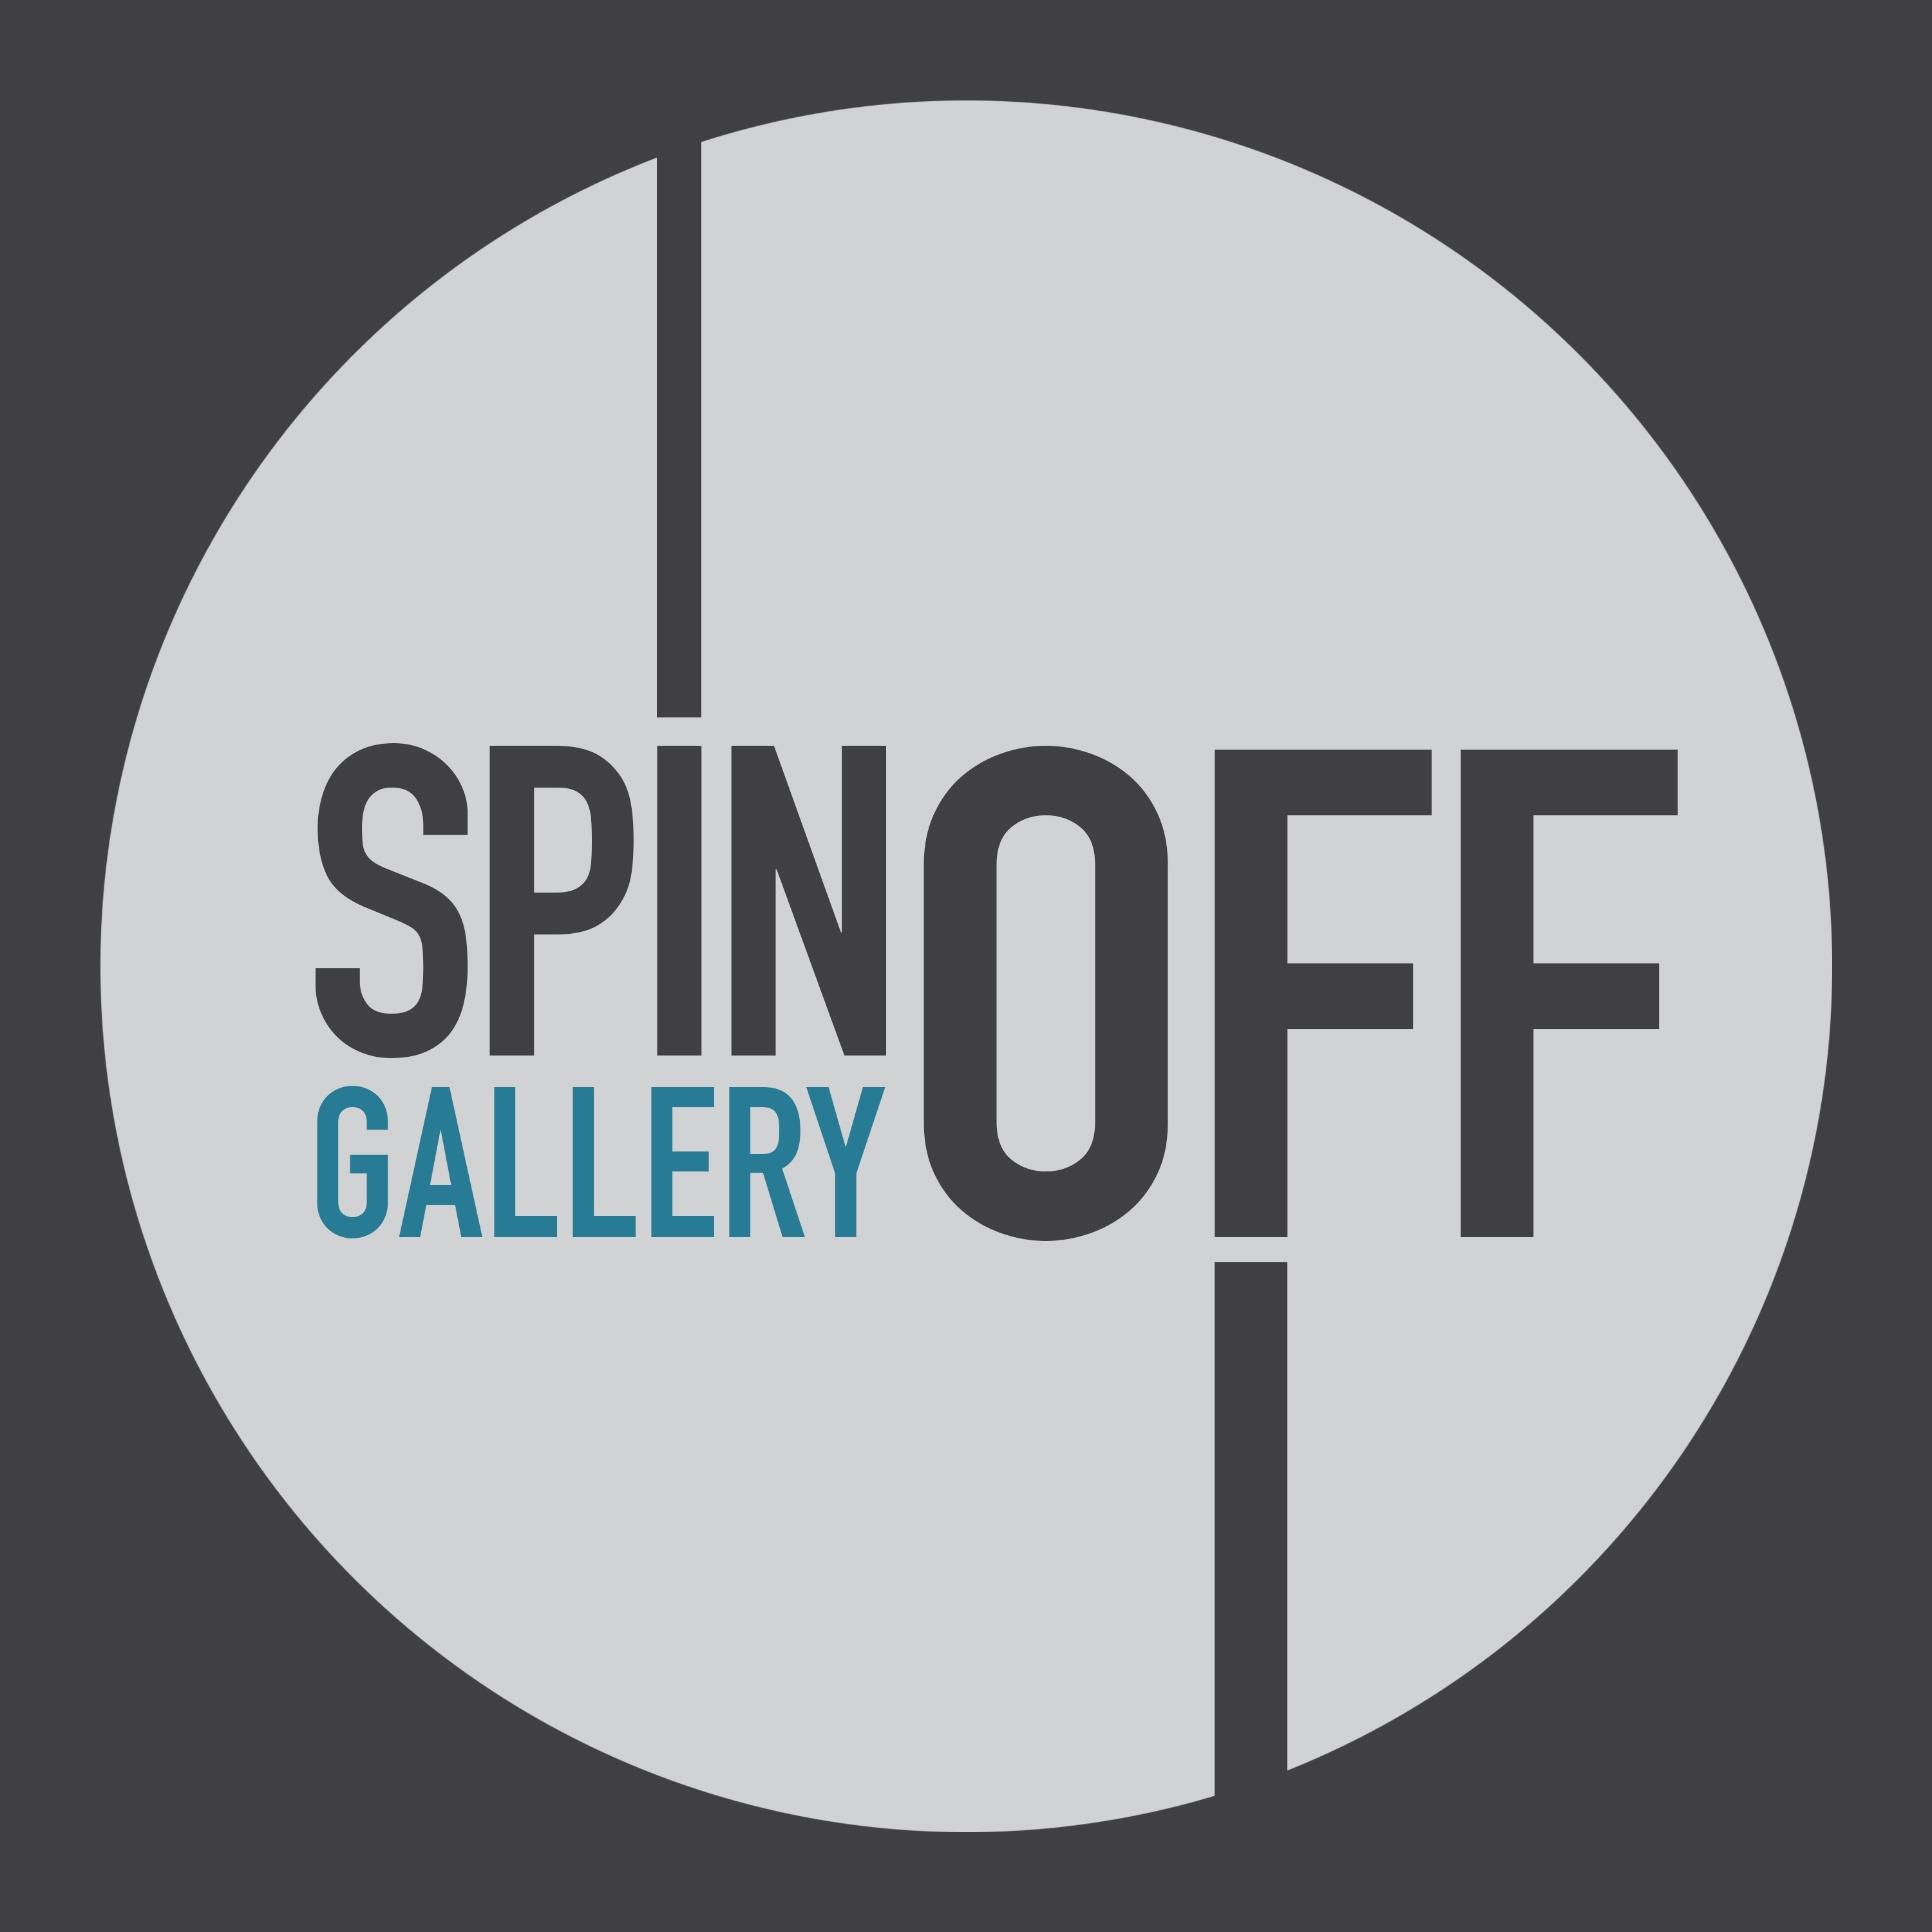 SpinOff Gallery